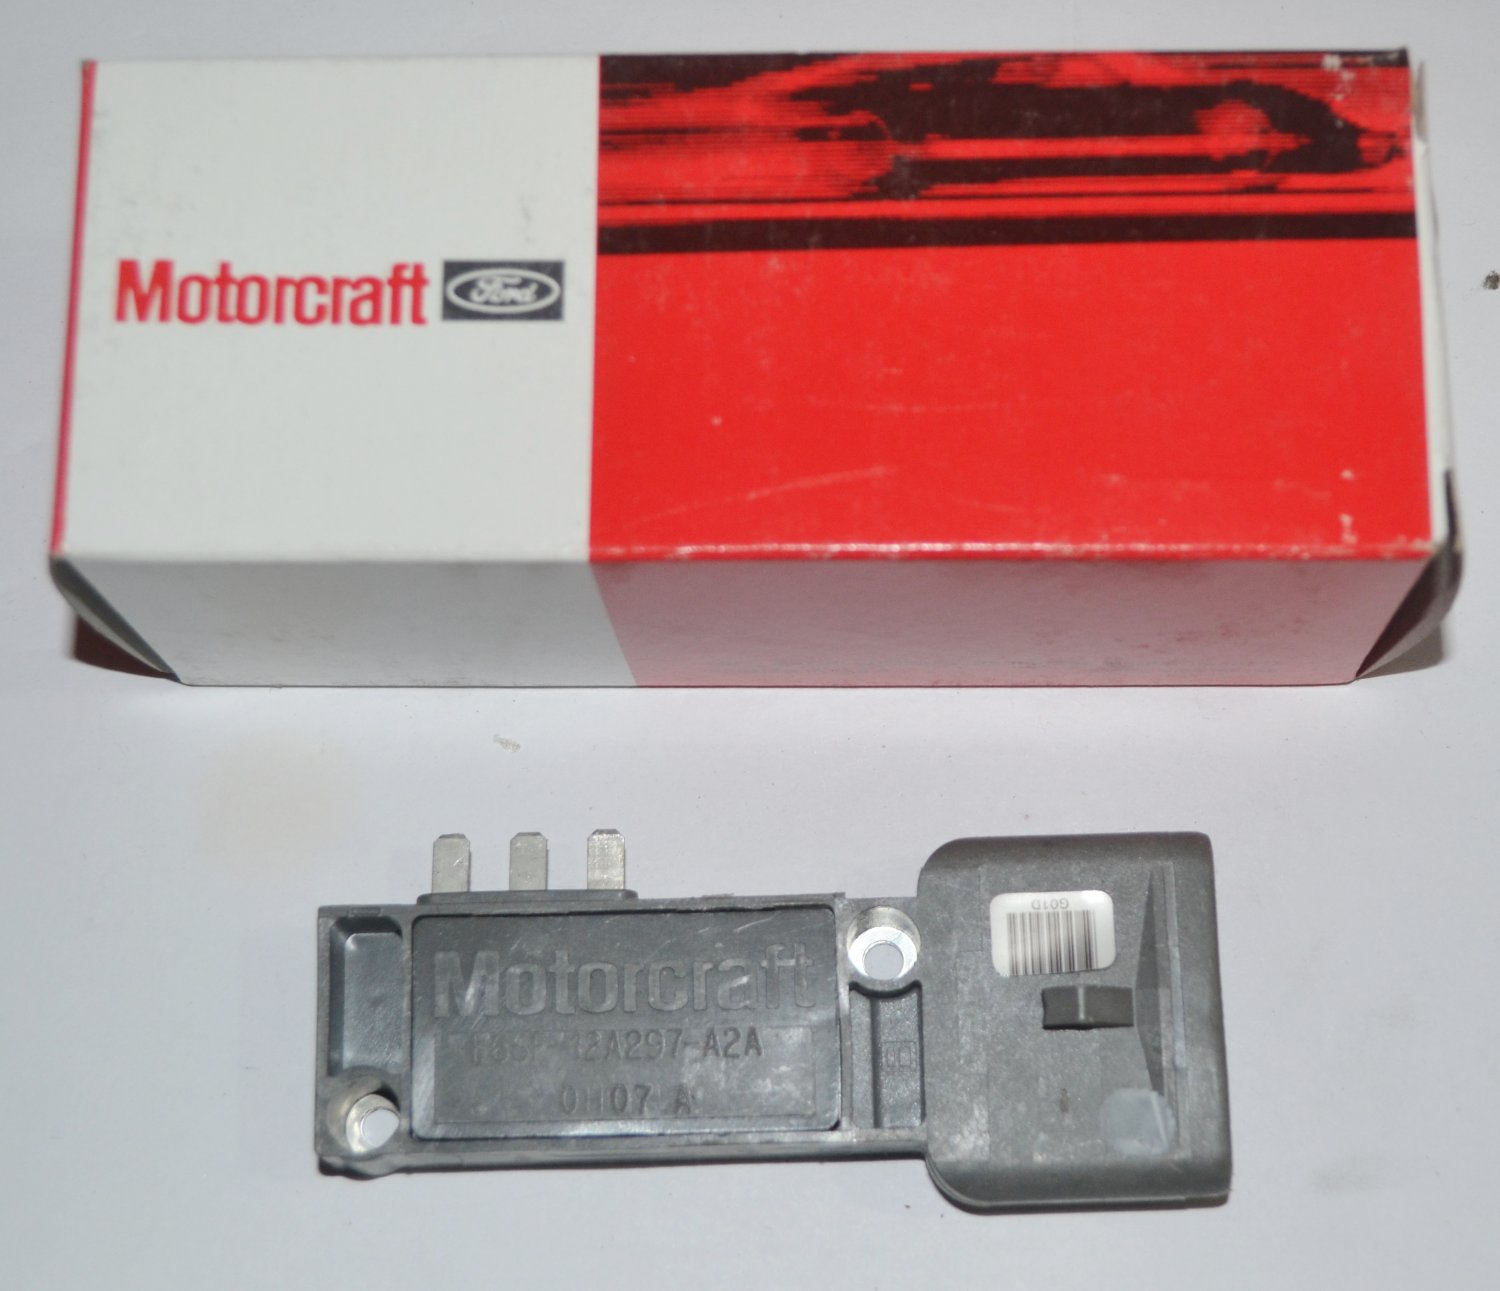 hight resolution of motorcraft ignition module ford mustang thunderbird ford pick ford van lincoln mercury